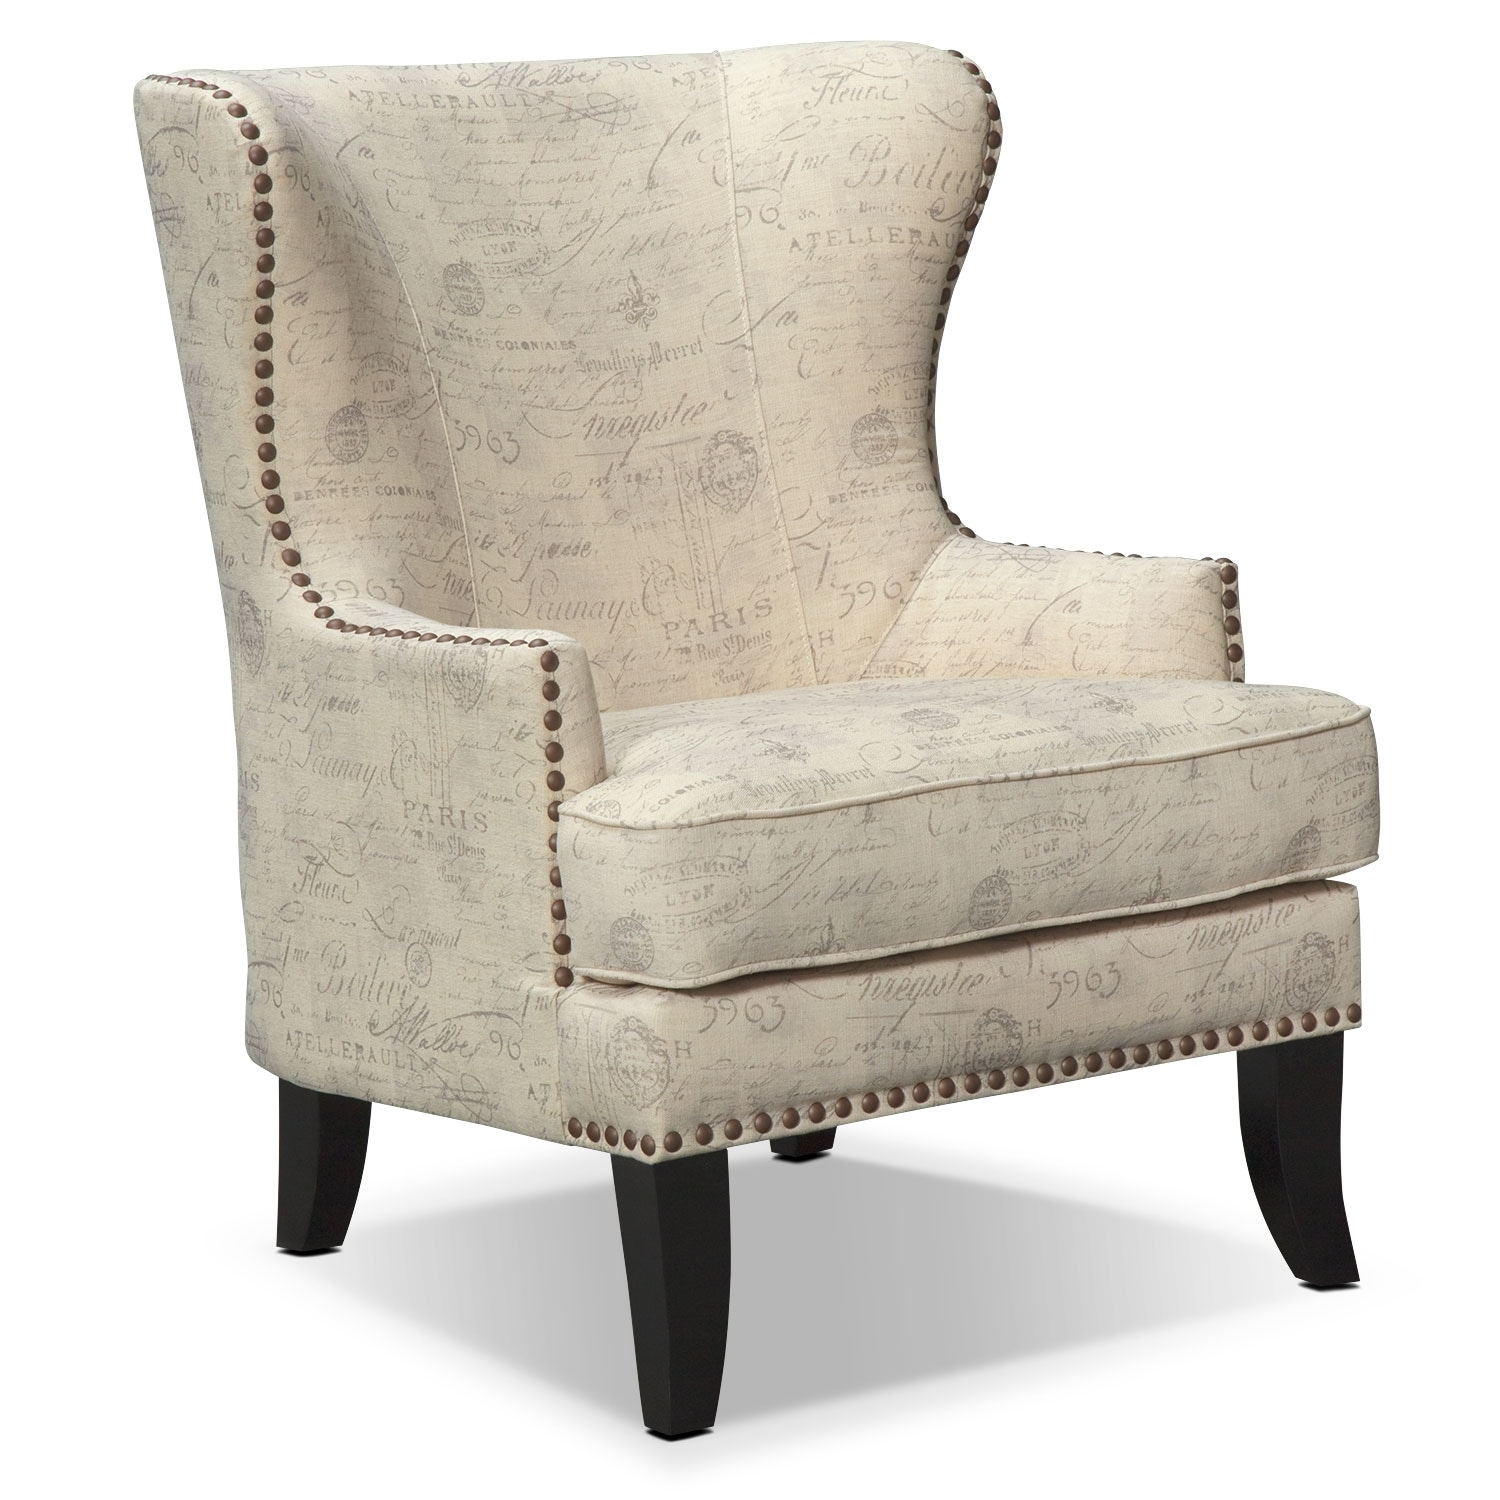 Irest chair american furniture furniture of america for Furniture of america furniture